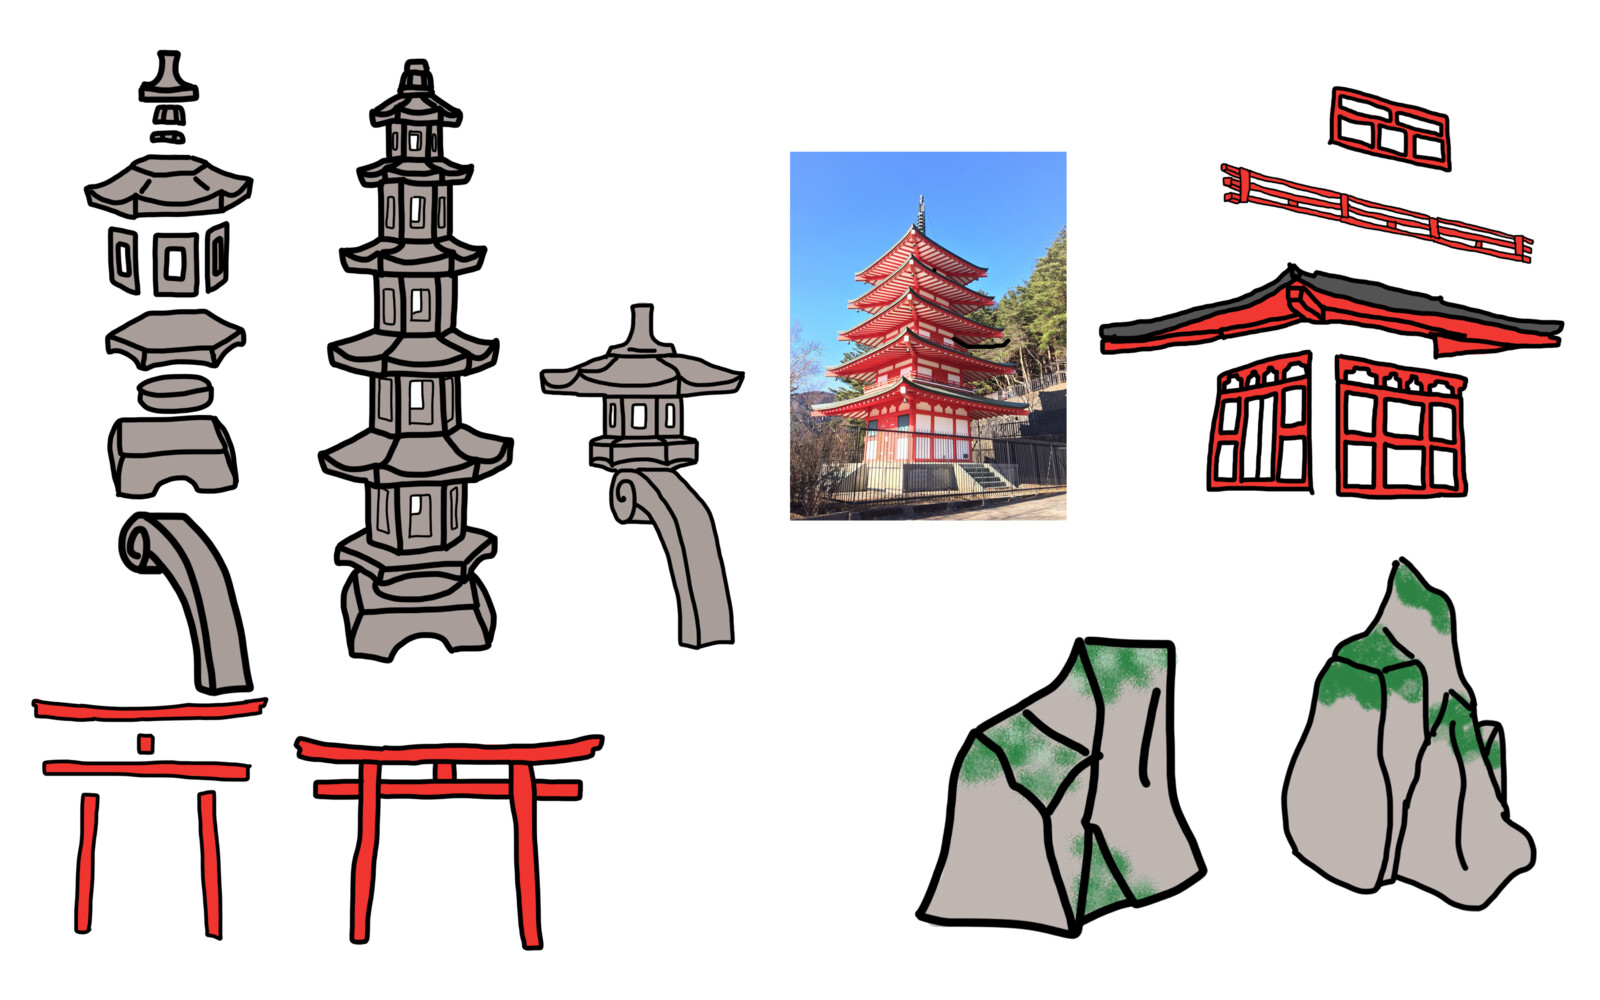 Early concept art of modular lanterns, arch pieces, and a few rocks